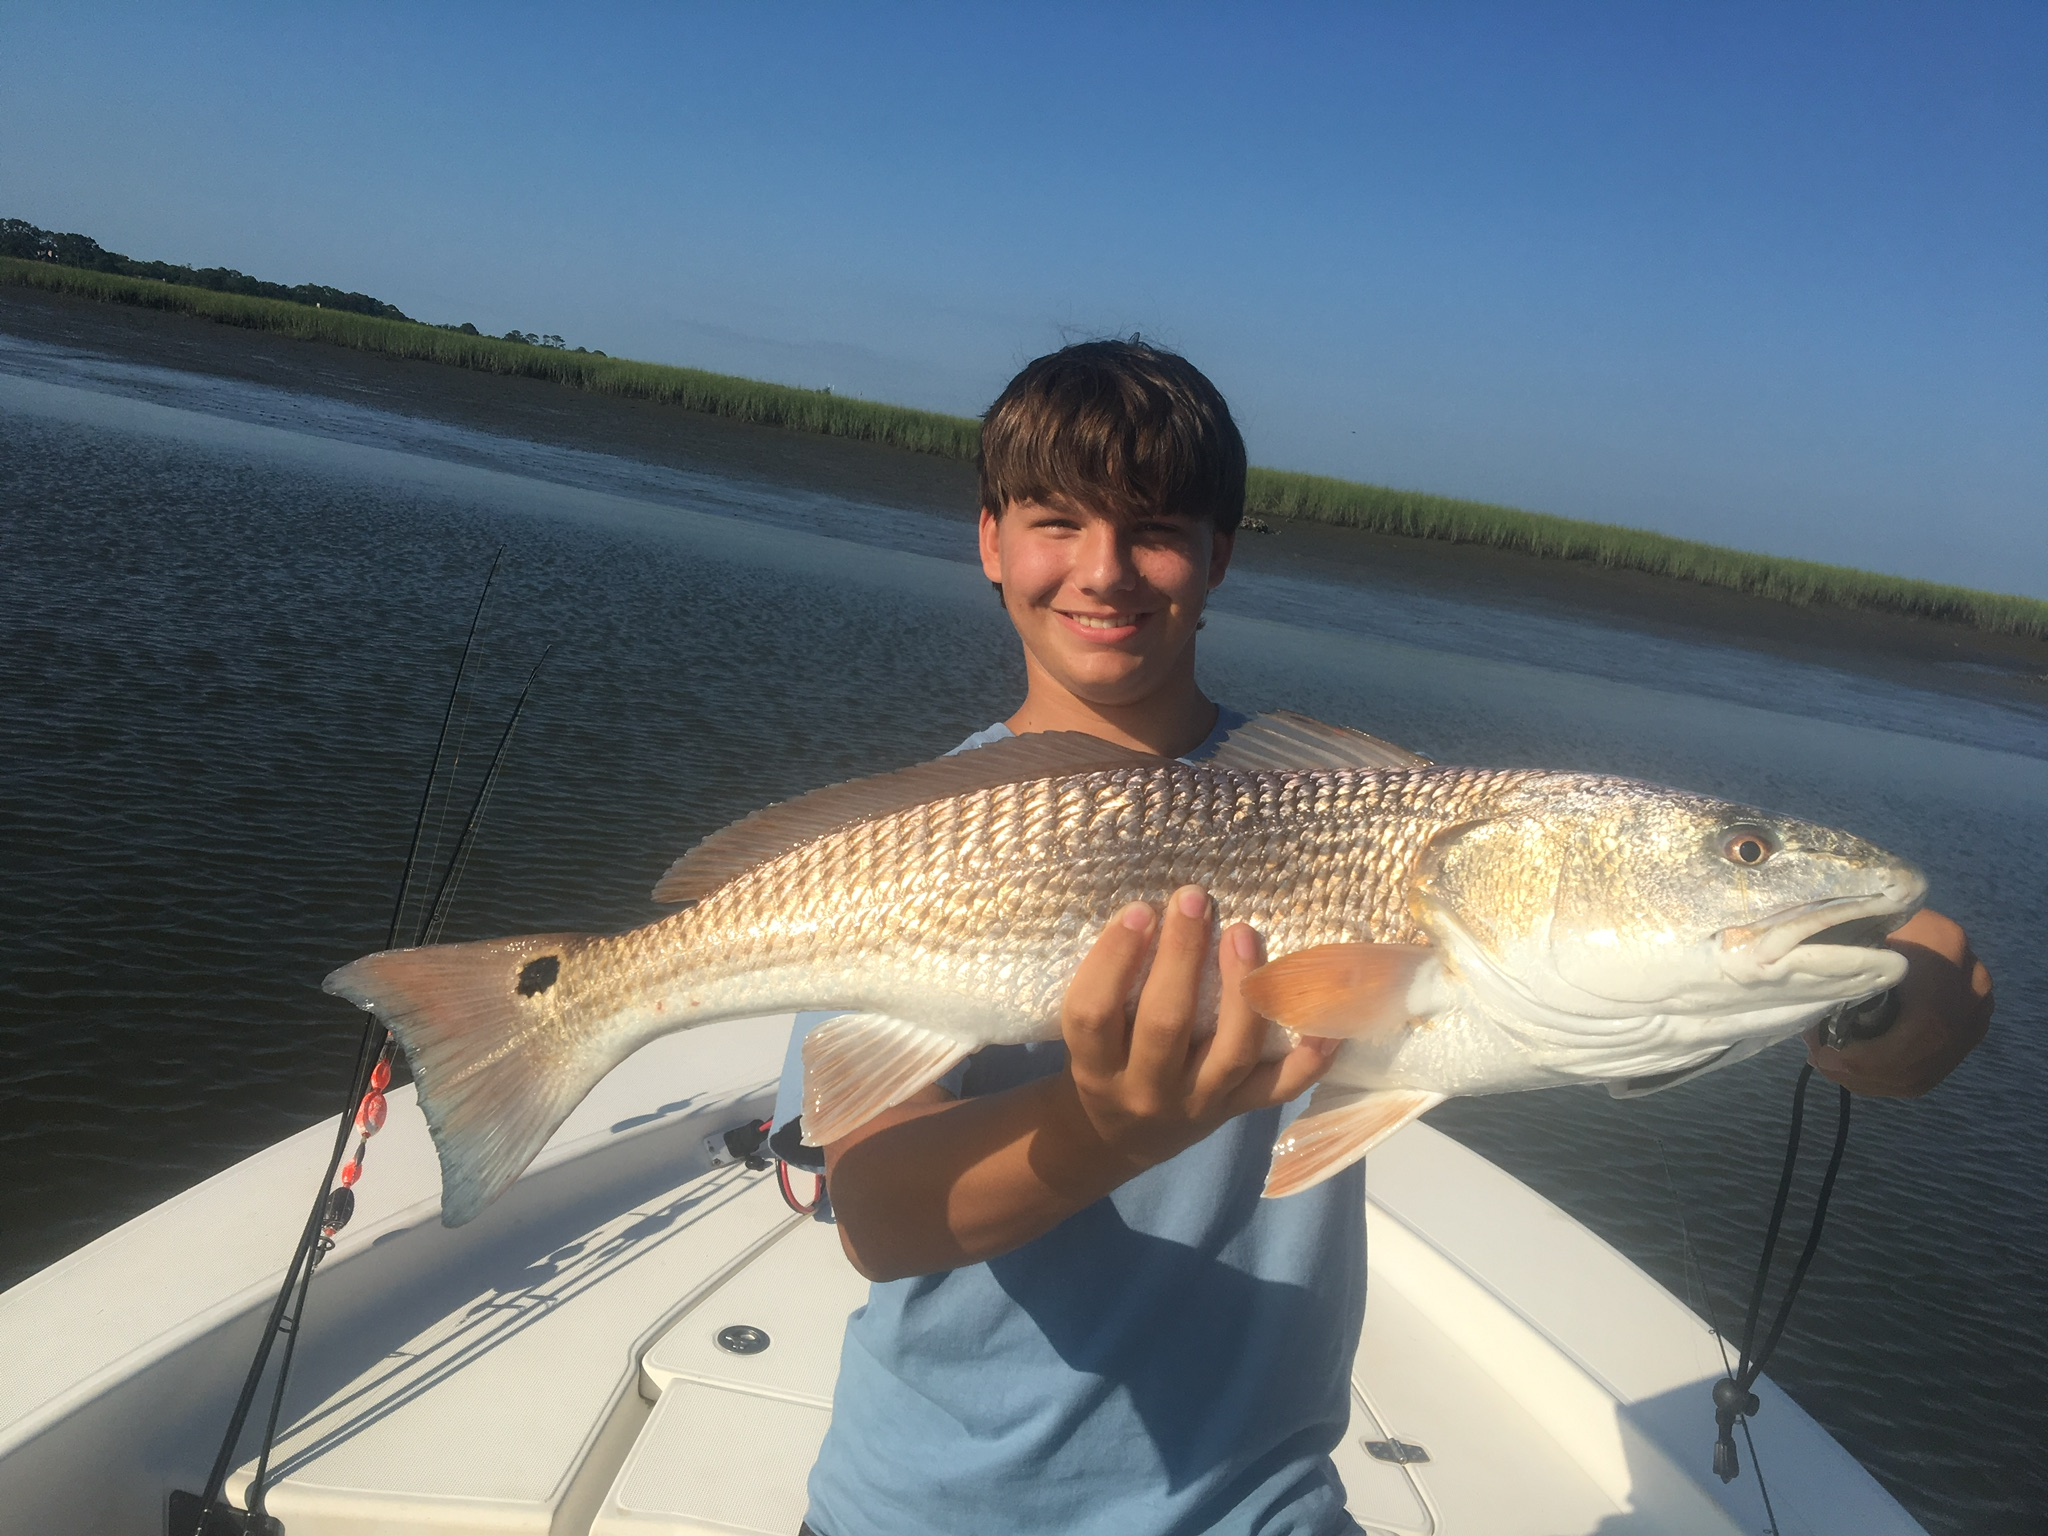 St Simons Island Fishing Report June 15, 2018